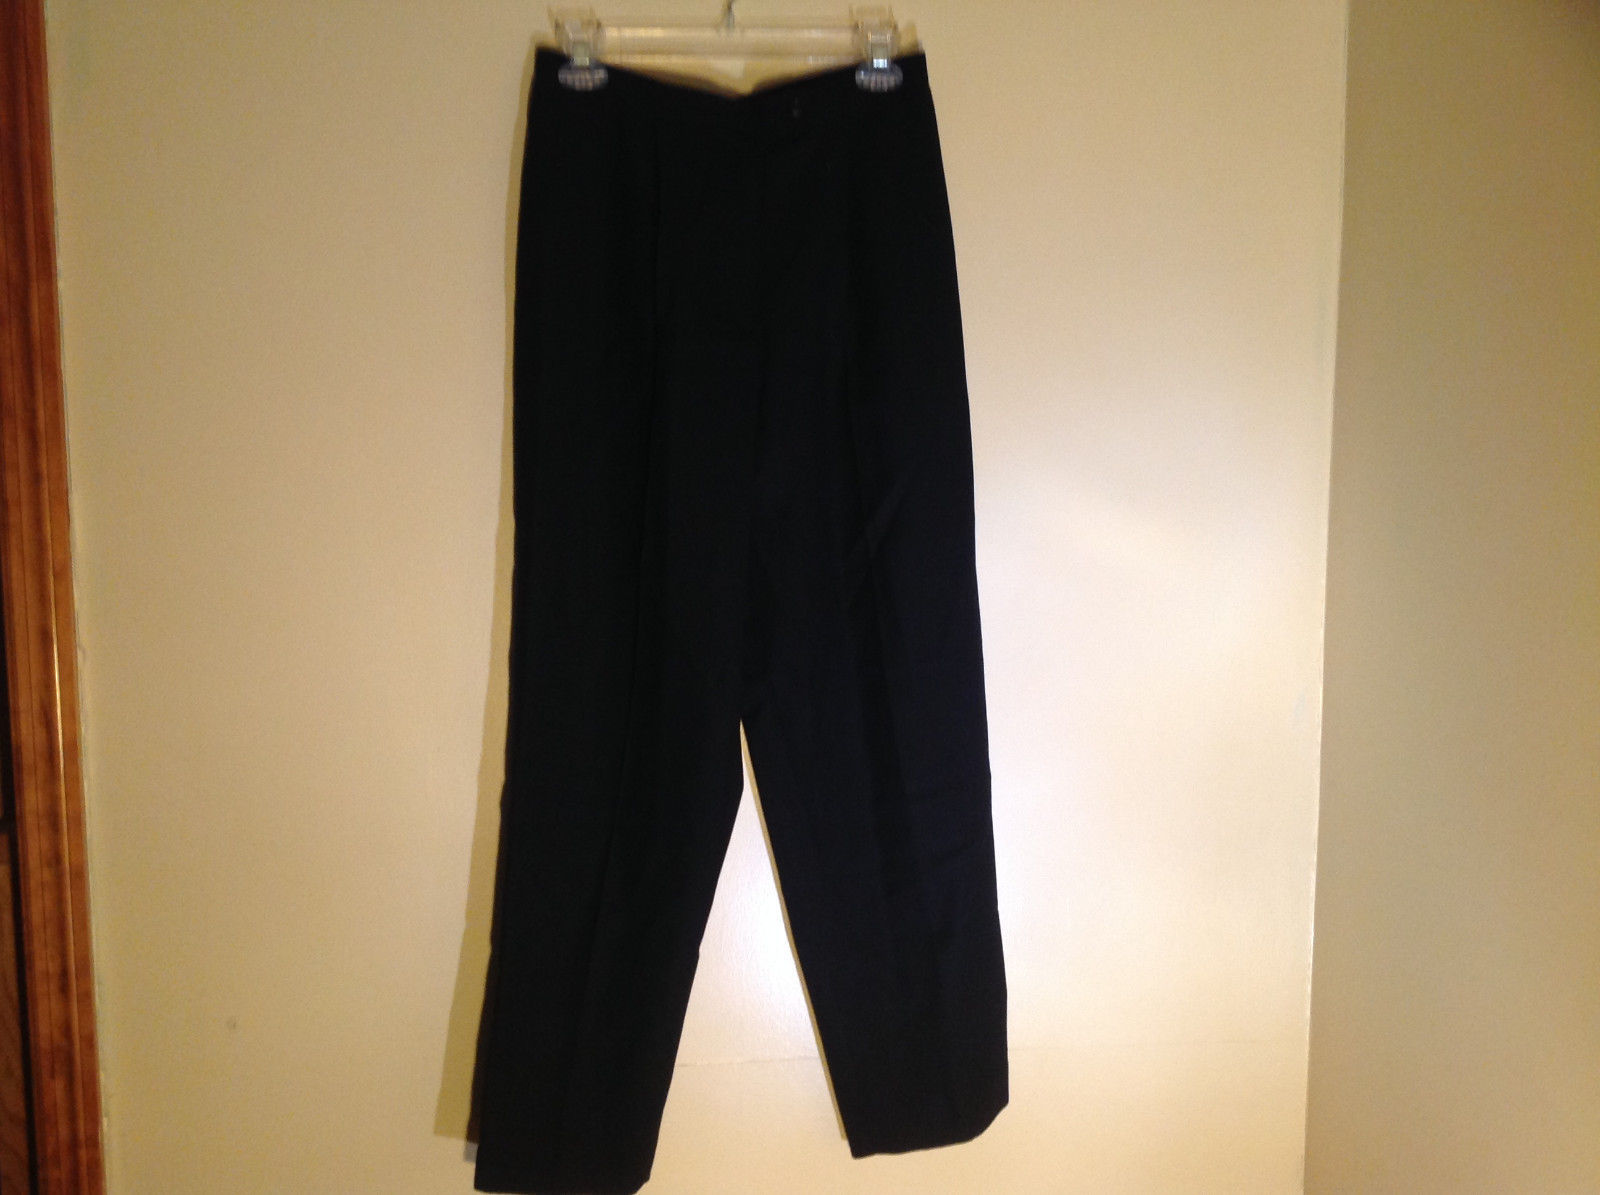 Cambell High Waisted Black Pleated Dress Pants Zip and Button Closure Size 10 P